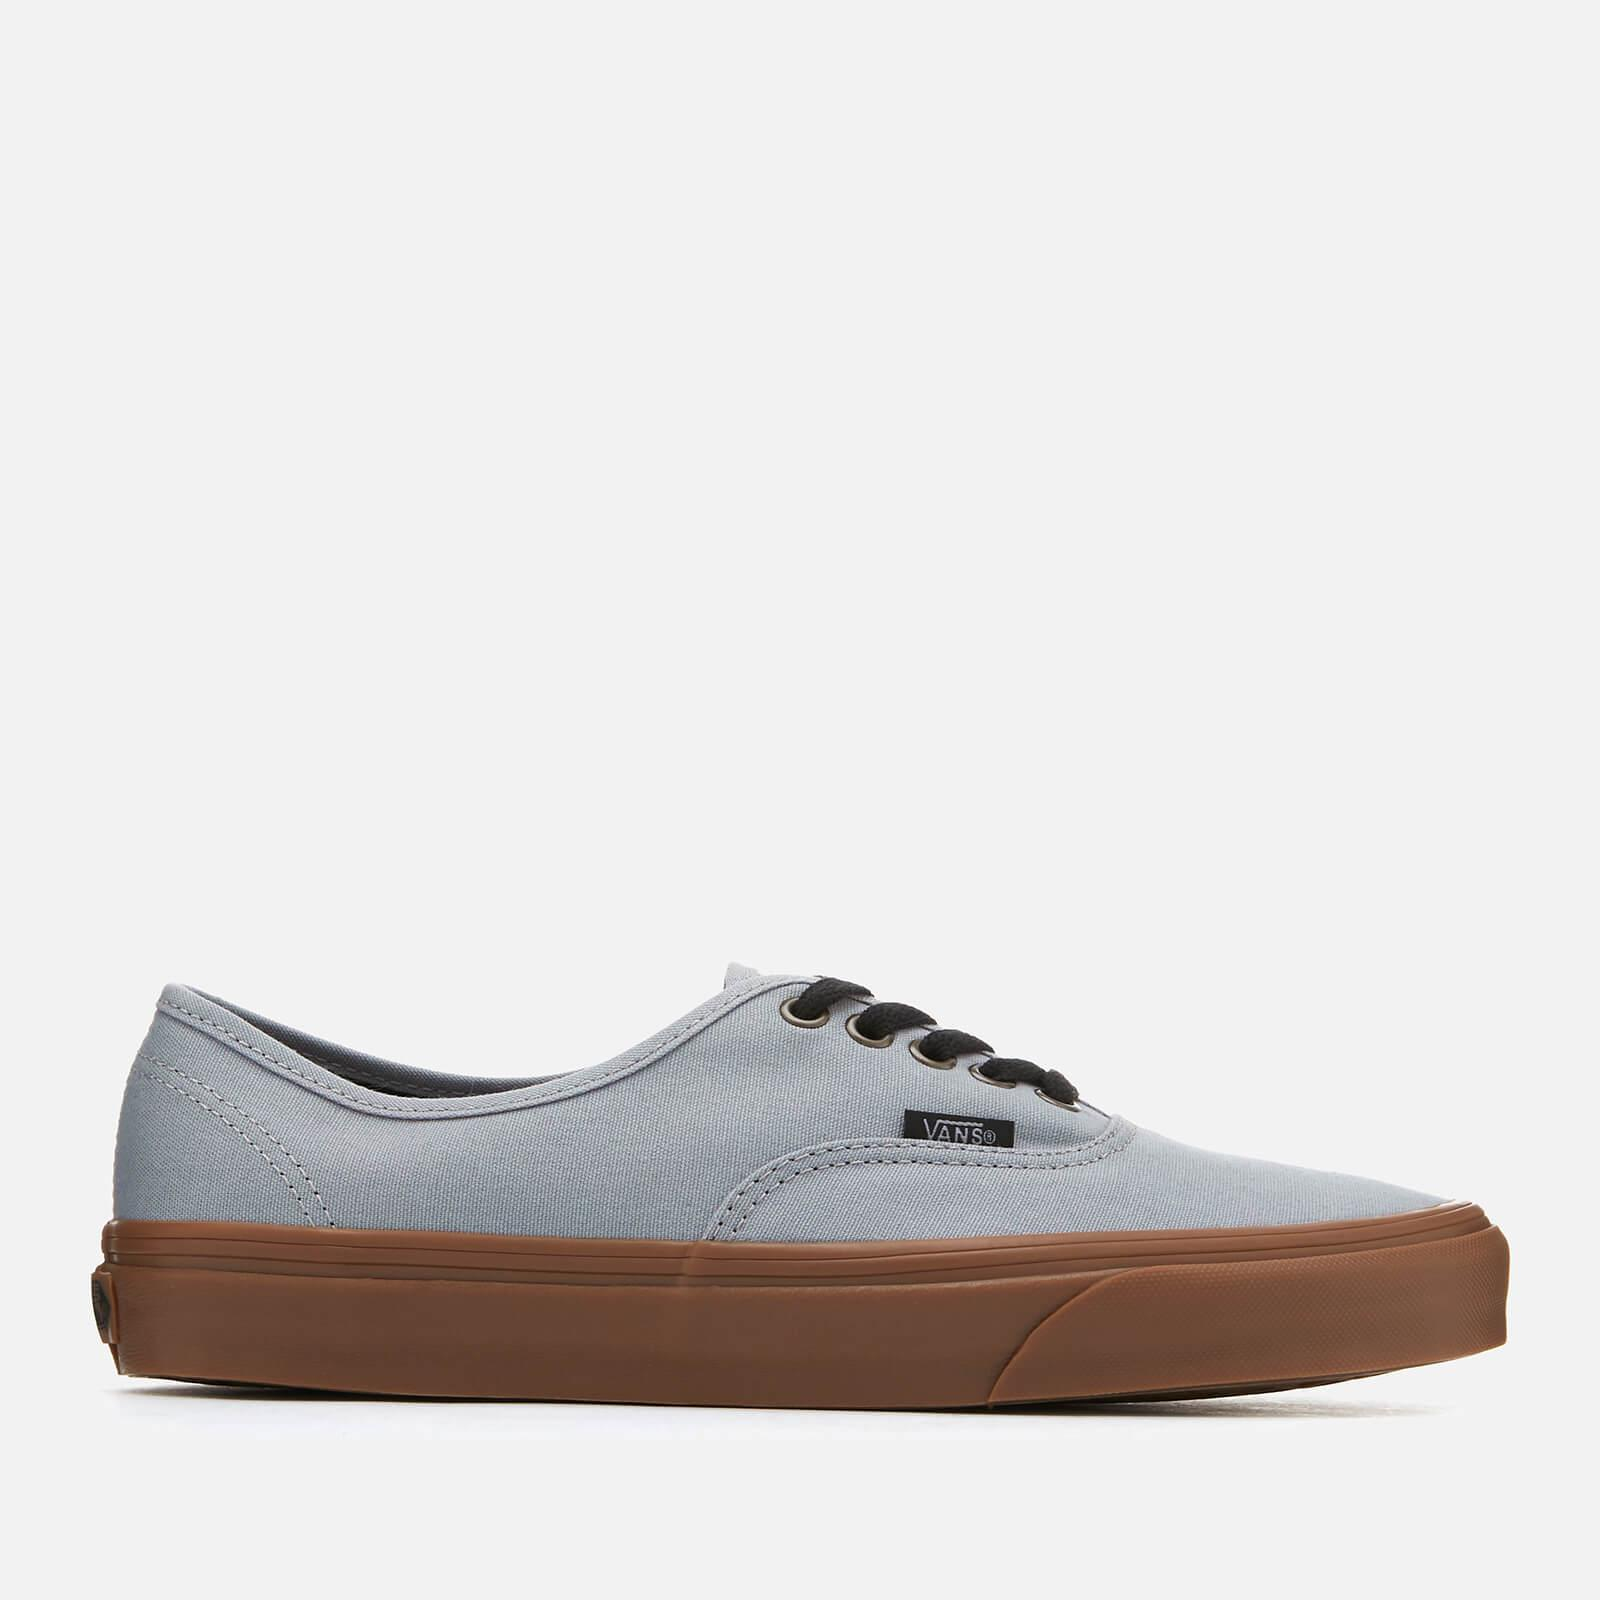 e0f632d1bf9c Lyst - Vans Authentic Gum Sole Trainers in Gray for Men